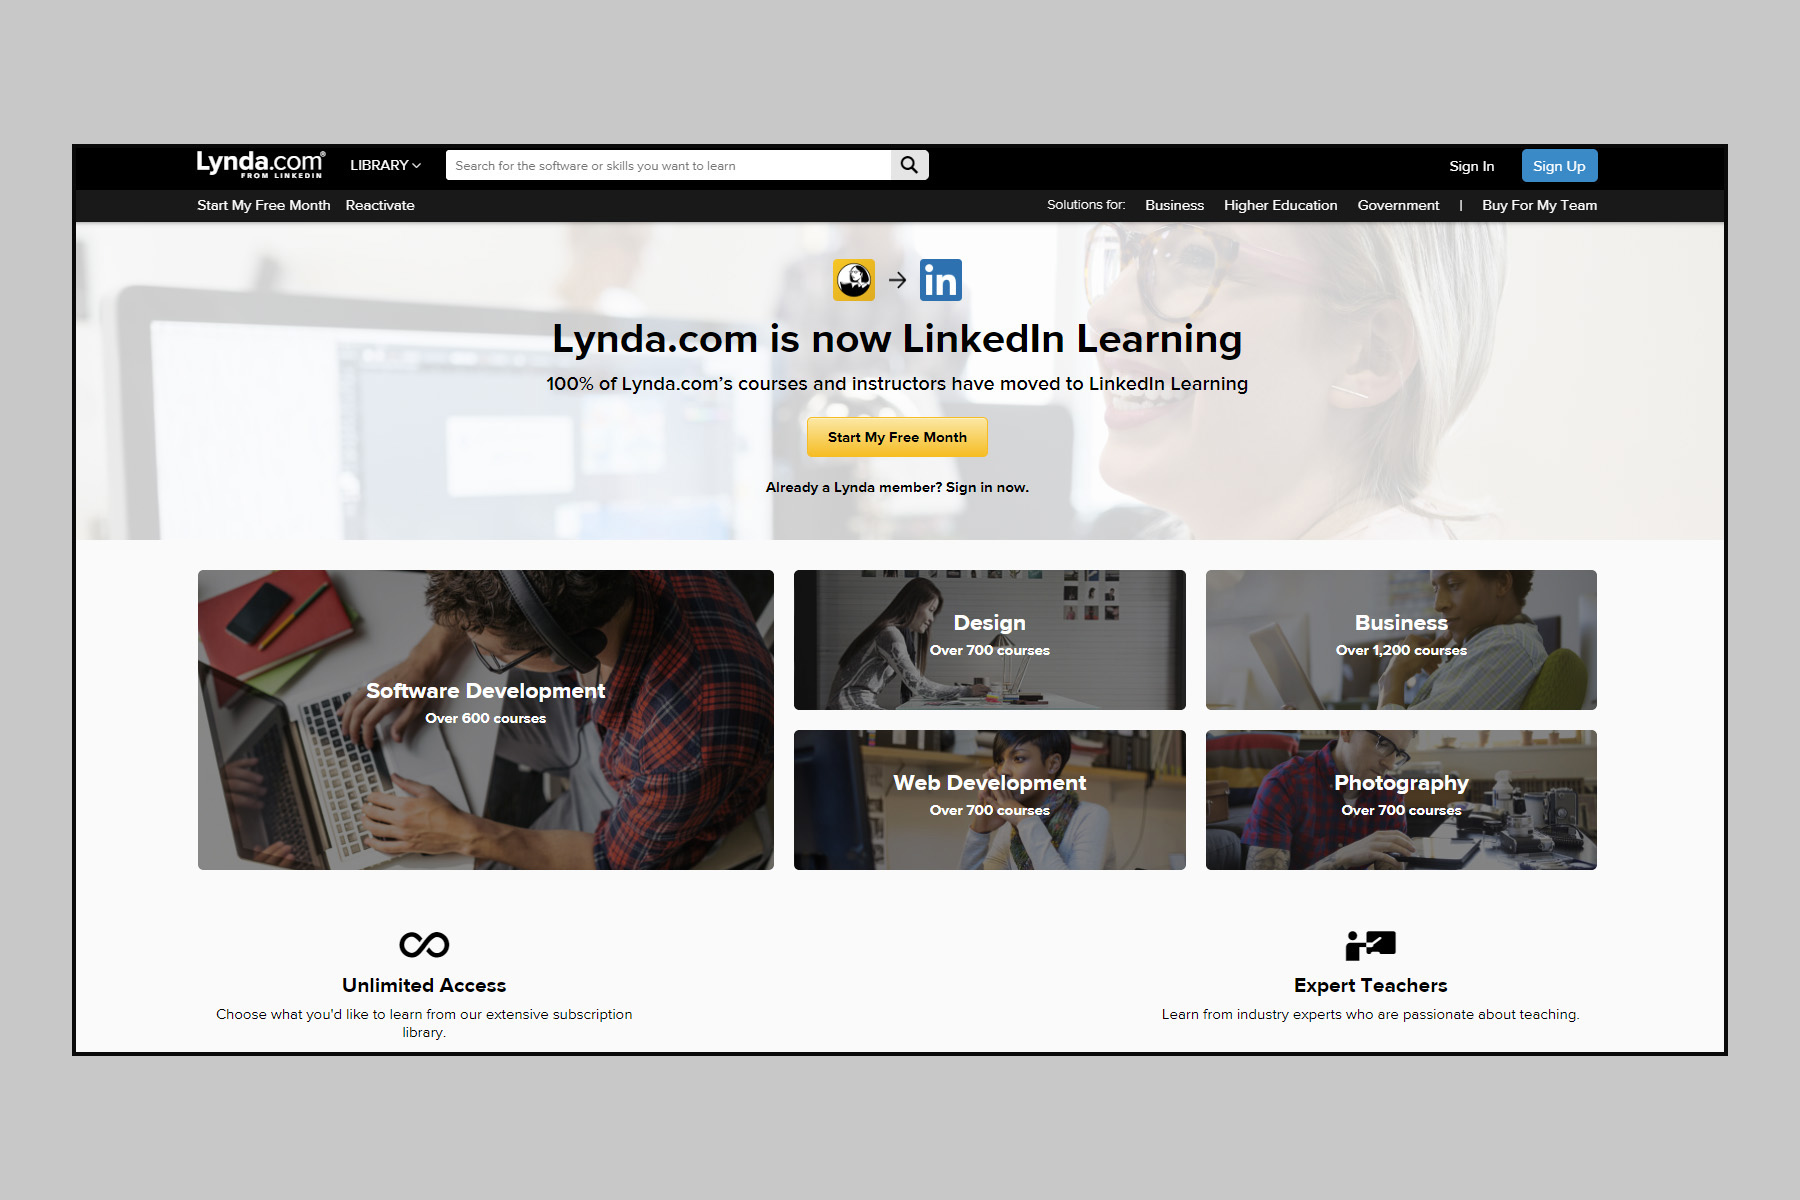 Best Online Learning with #1 Rated Lynda.com